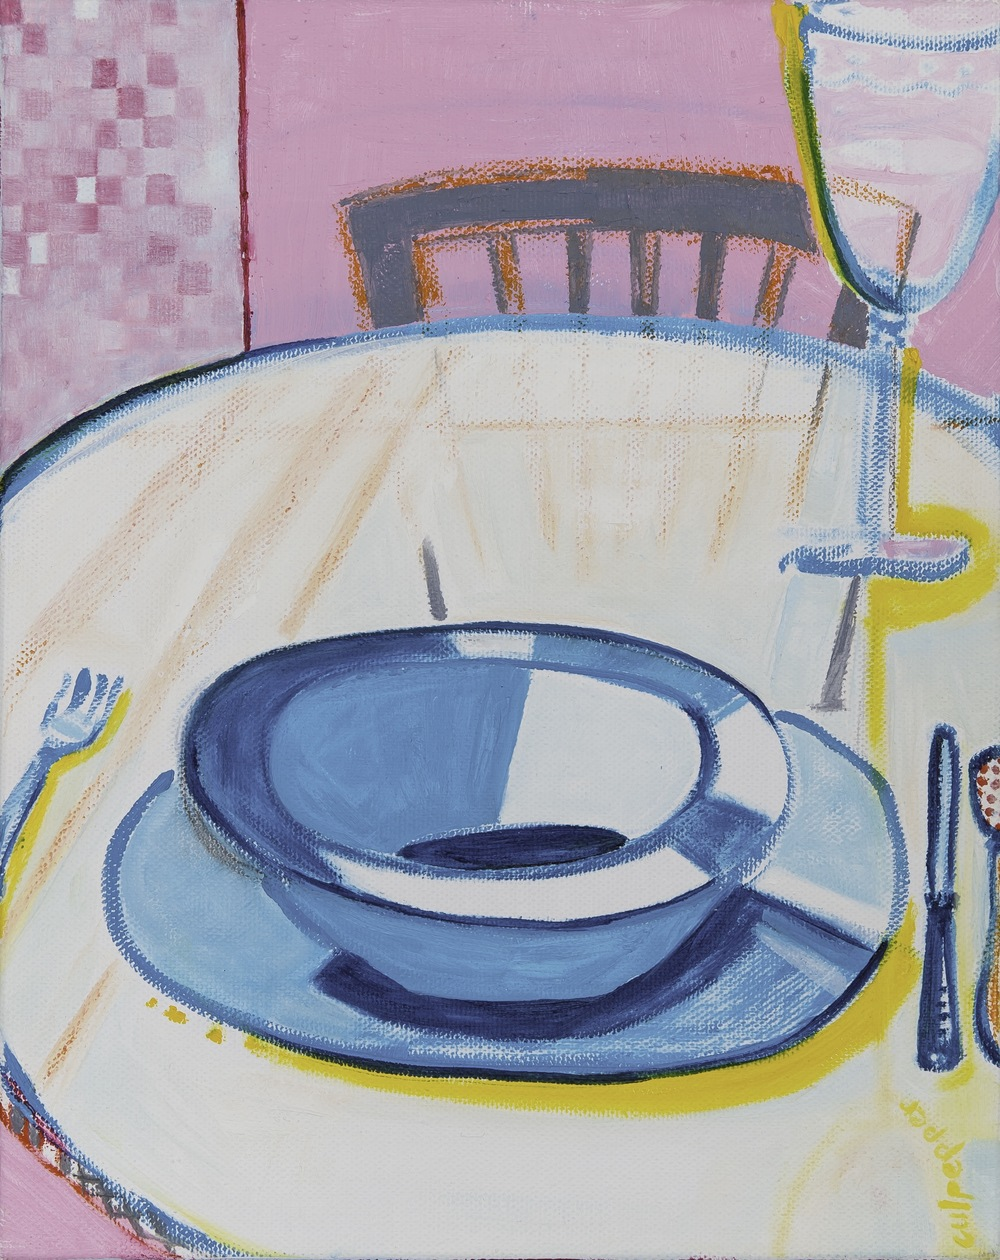 table manners    oil + pastel  |  10 x 8